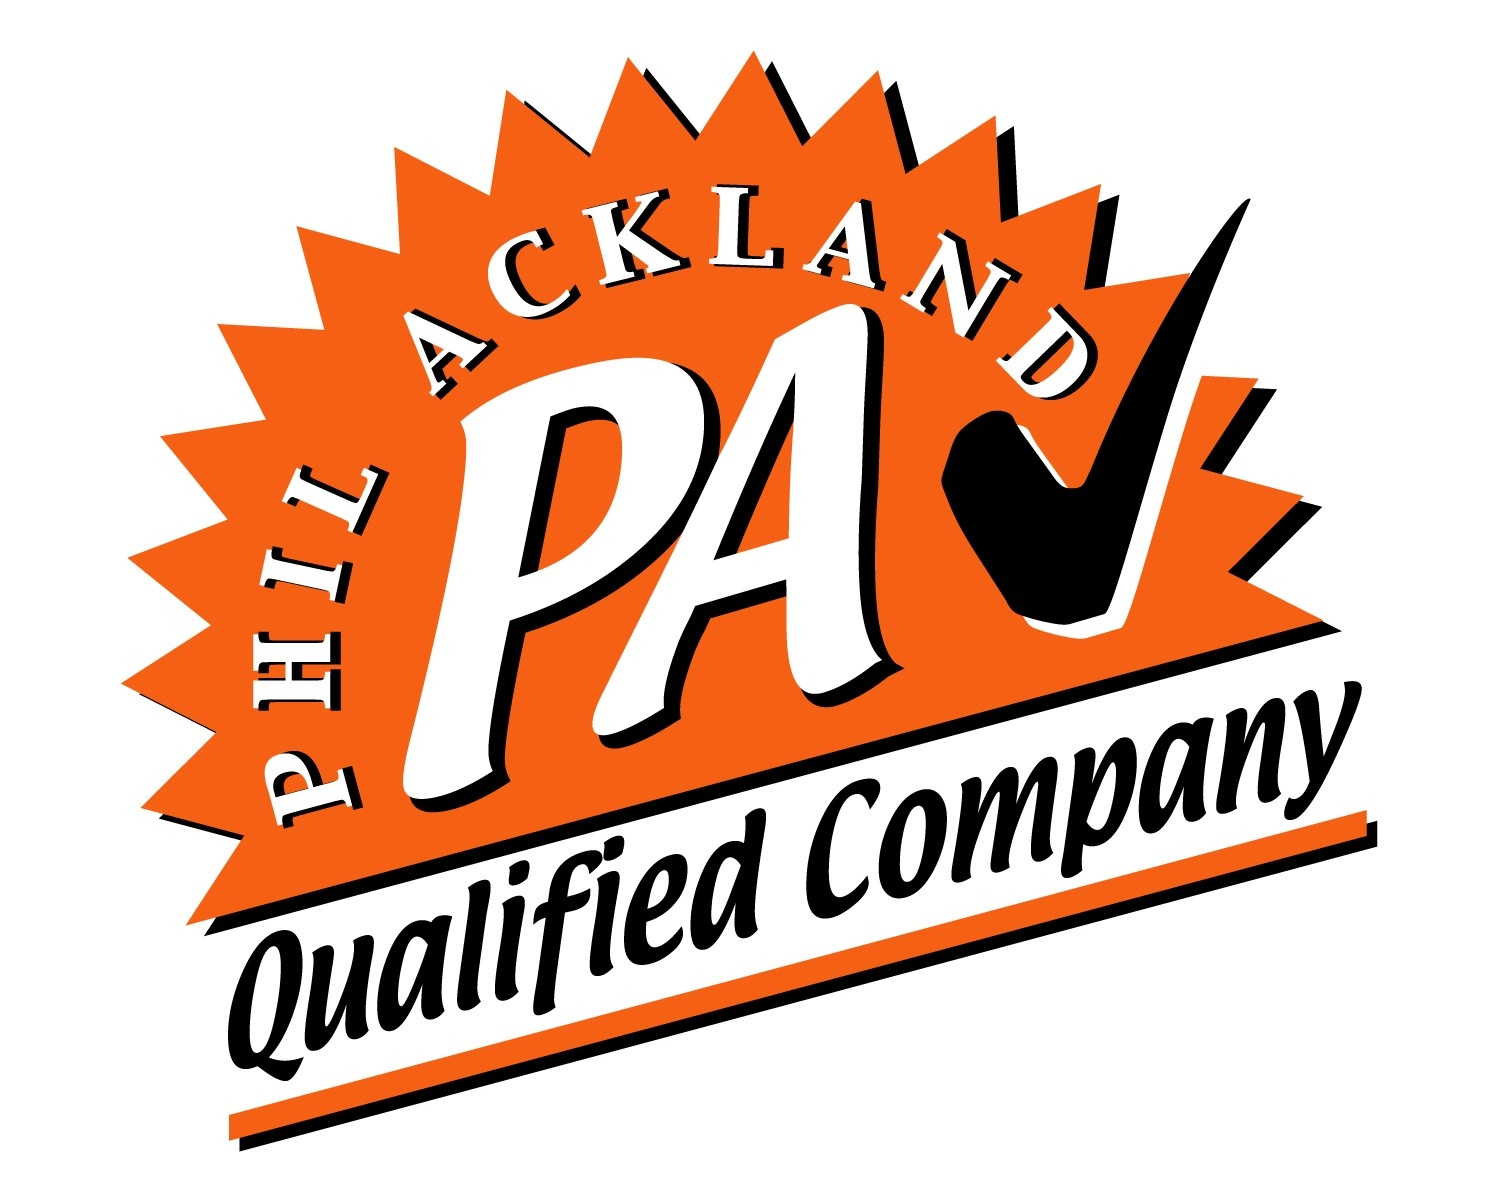 qualified logo